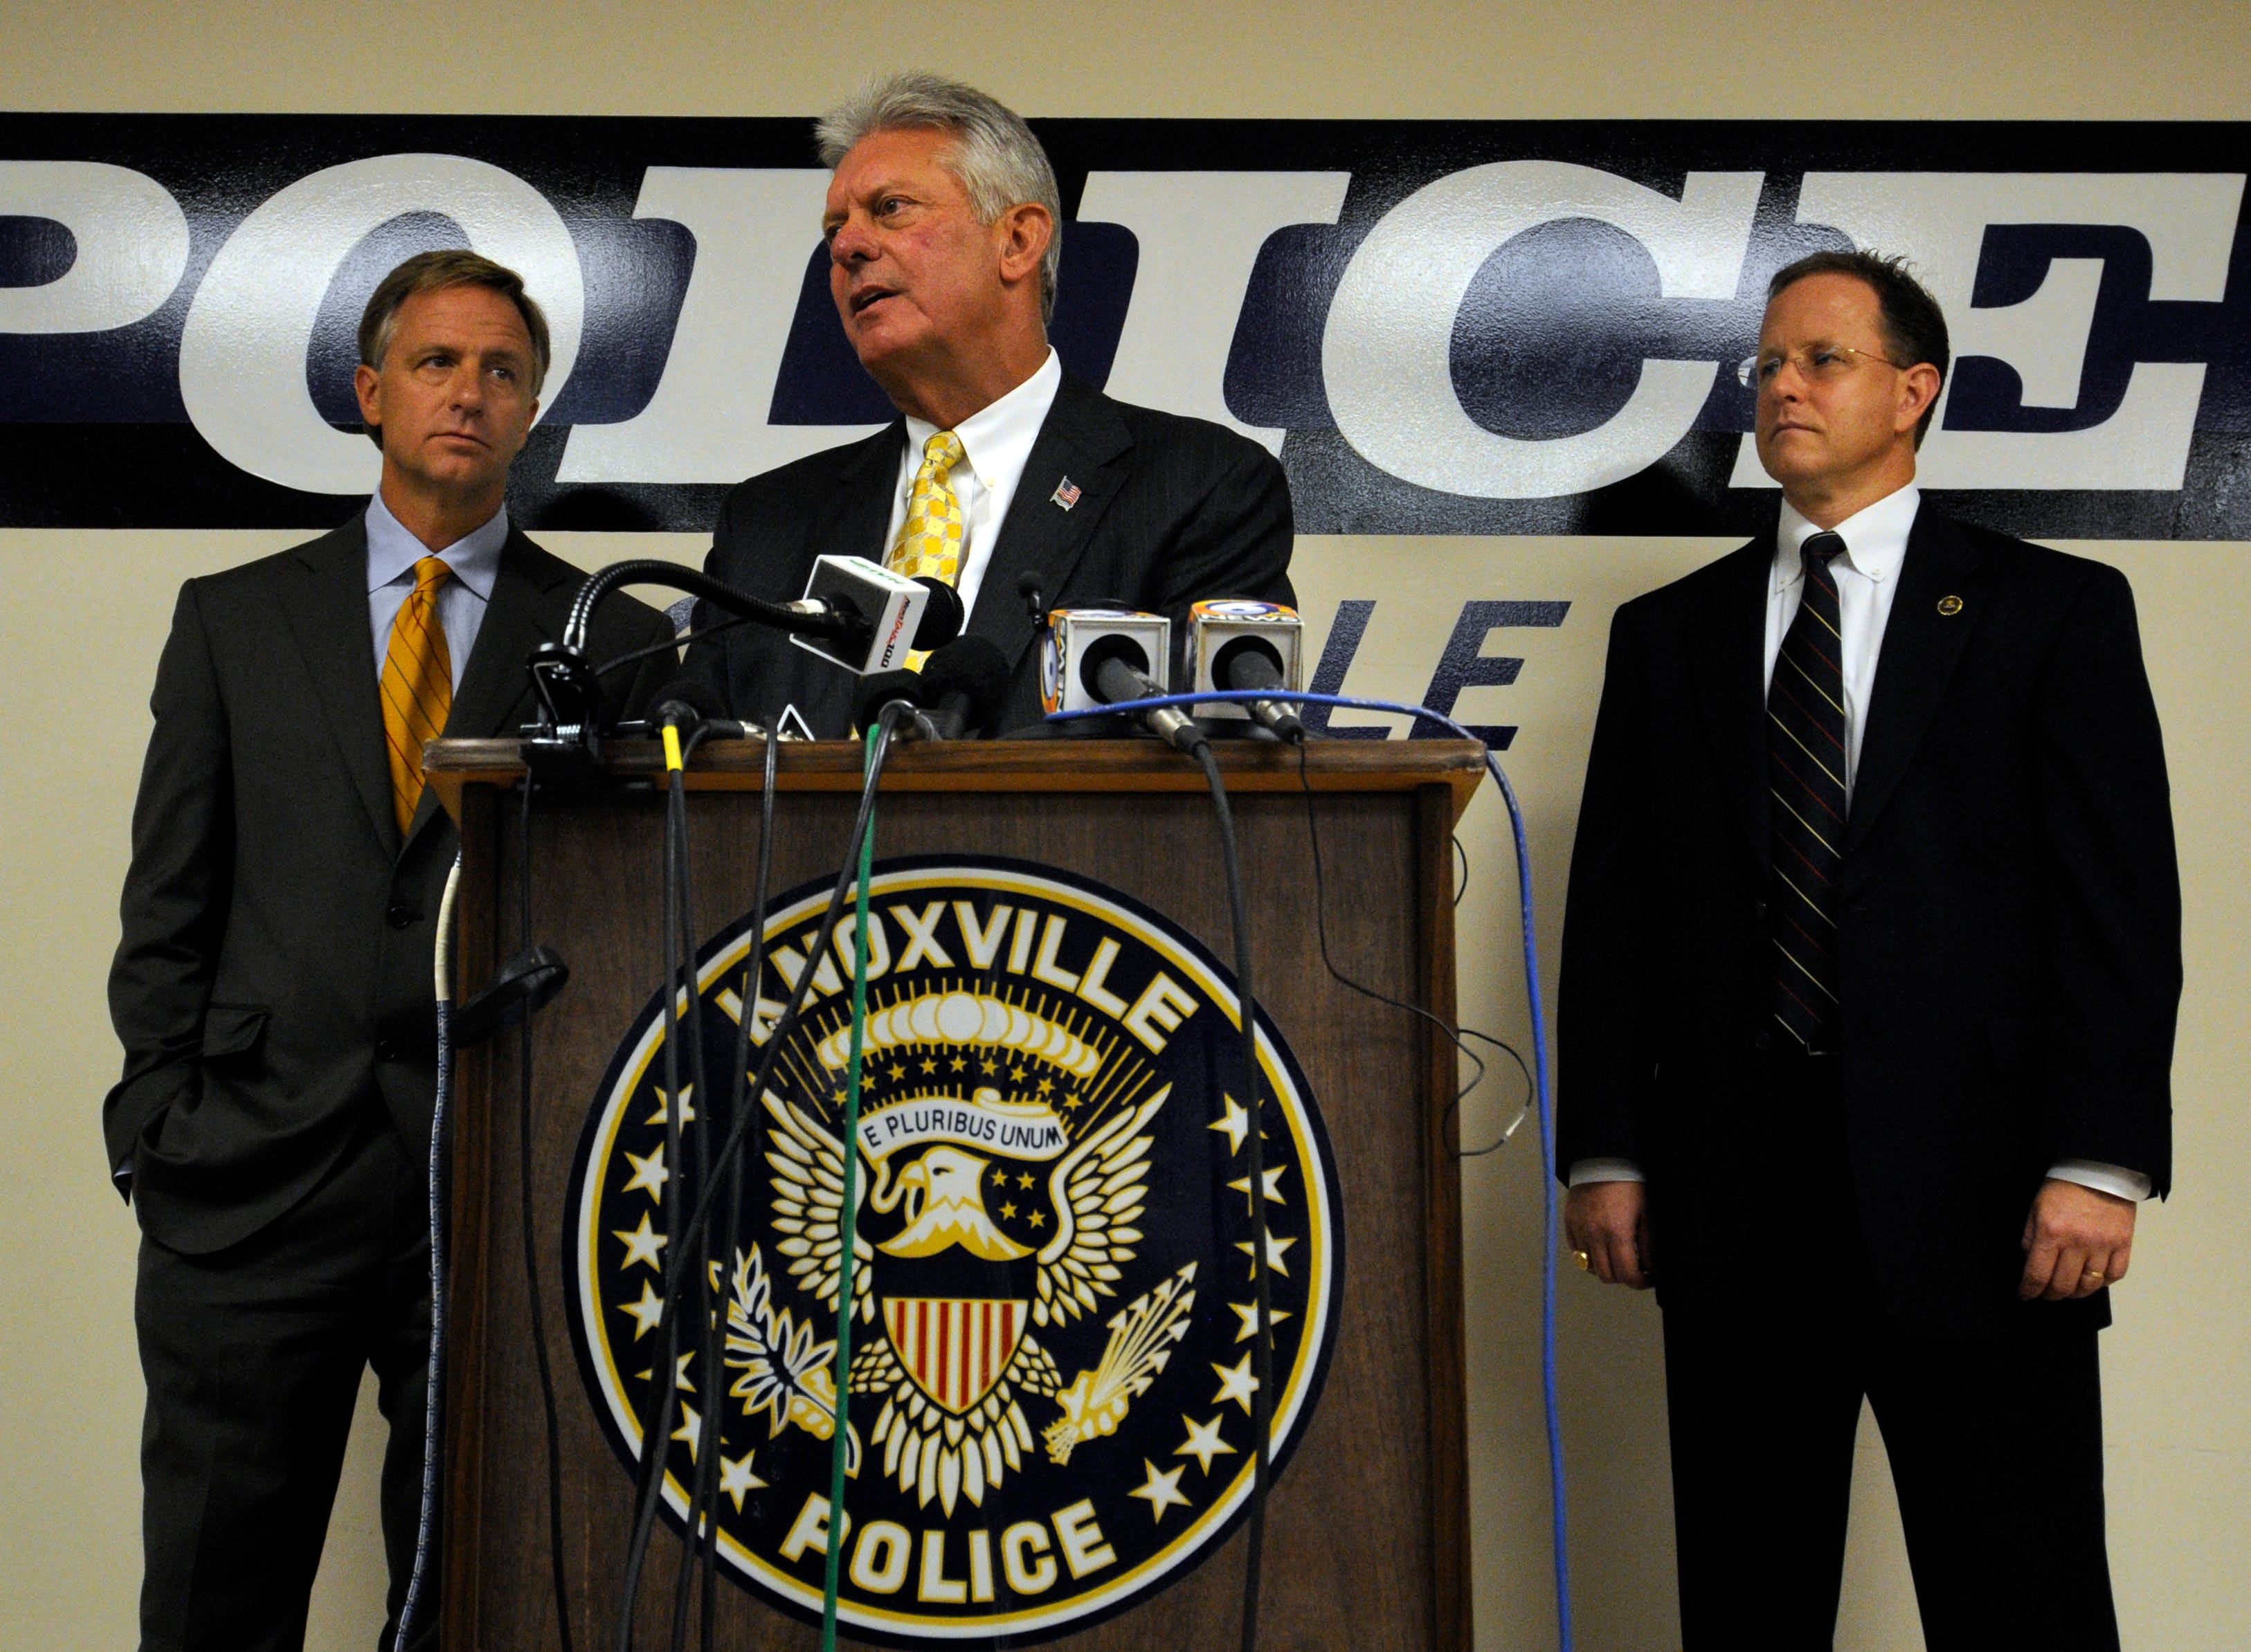 Knoxville Police Chief Sterling Owen IV, center, Mayor Bill Haslam, left, and FBI Special Agent in Charge Richard Lambert, right, hald a press conference Monday, Aug. 28, 2008 about the progress of the investigation into the shooting at the Tennessee Valley Unitarian Universalist Church.